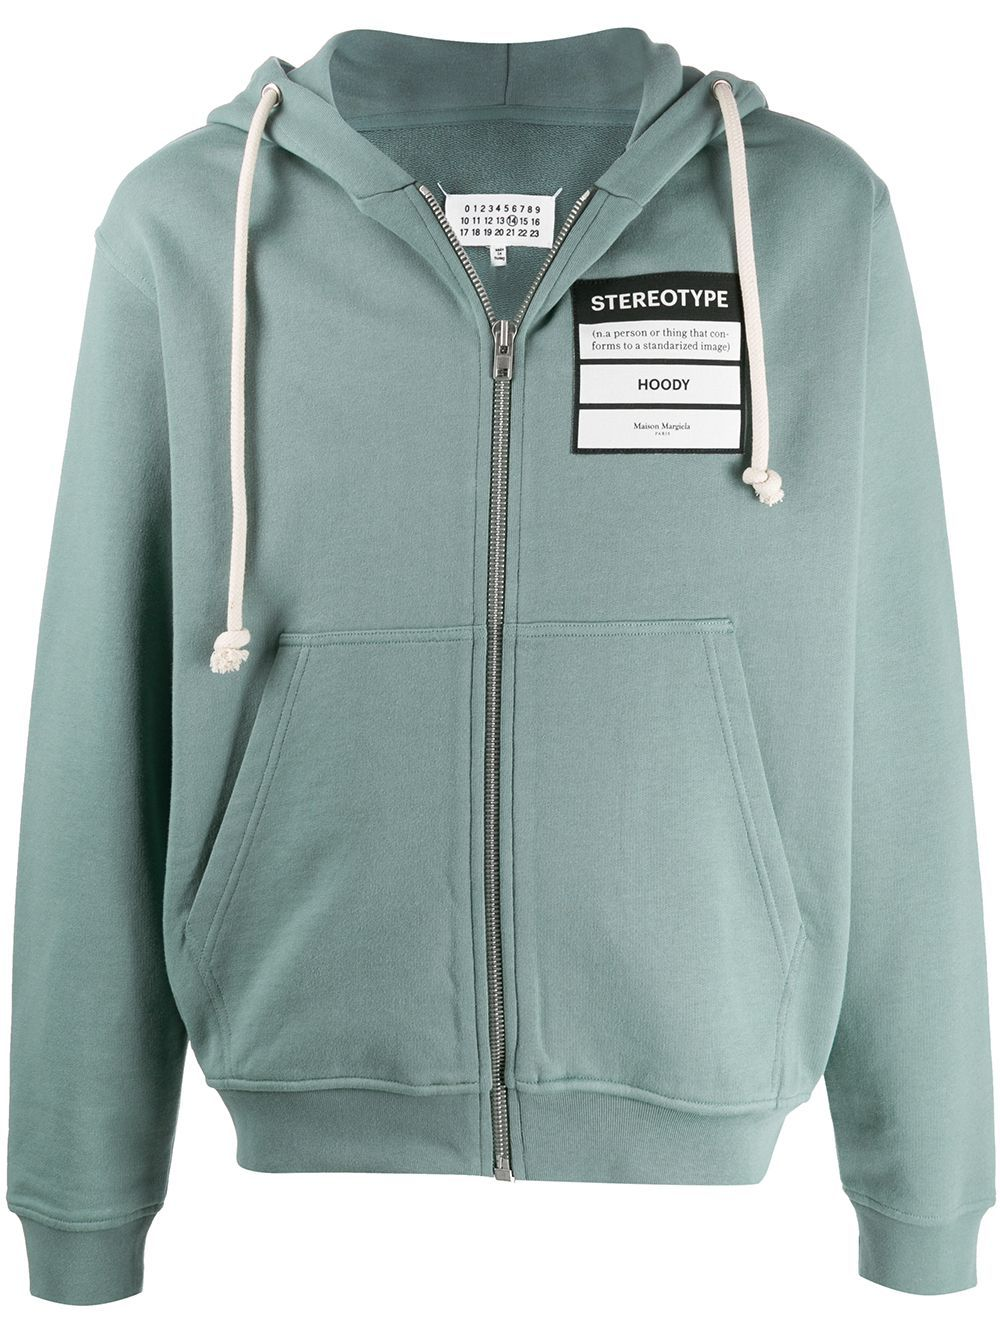 Maison Margiela MAISON MARGIELA MEN'S GREEN COTTON SWEATSHIRT